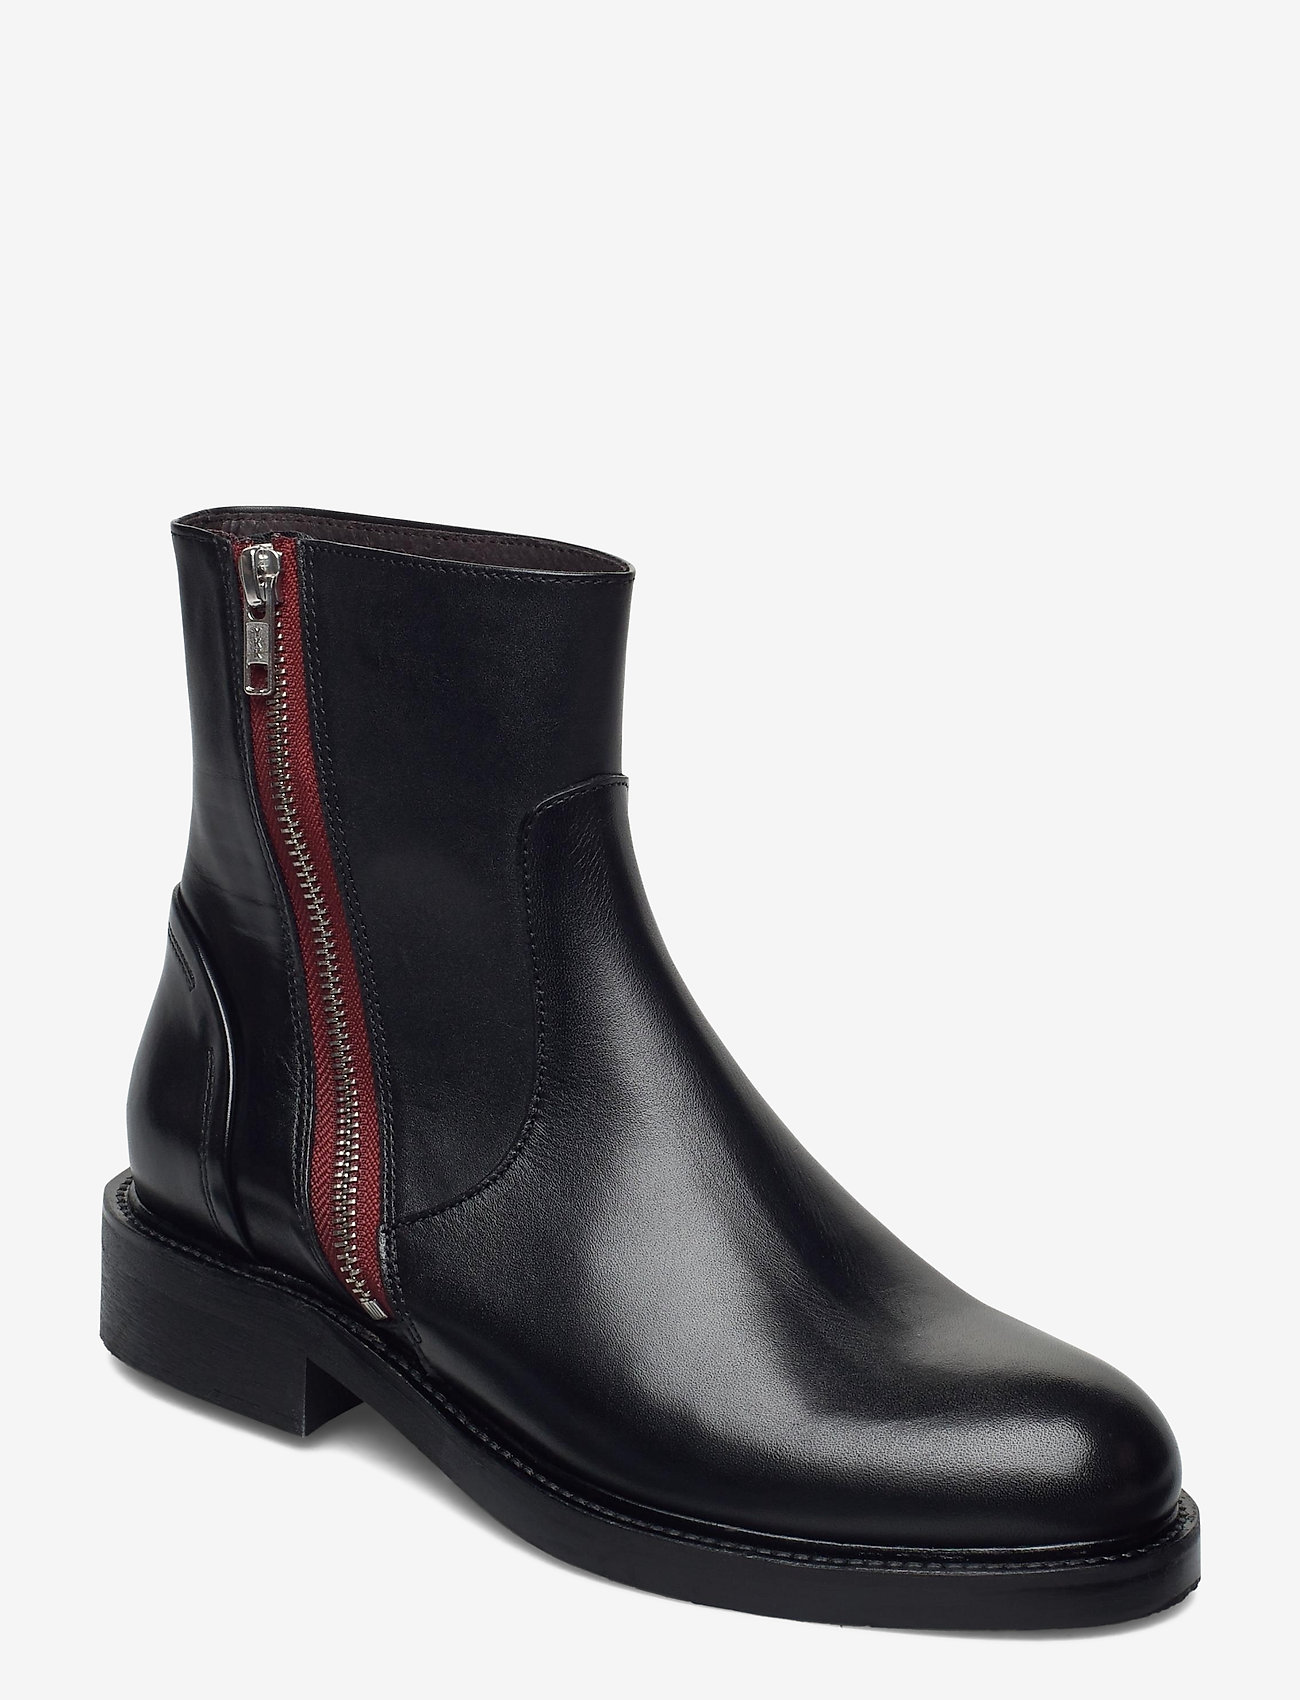 Billi Bi - Boots 83450 - chelsea boots - black calf /red zip 80 - 0